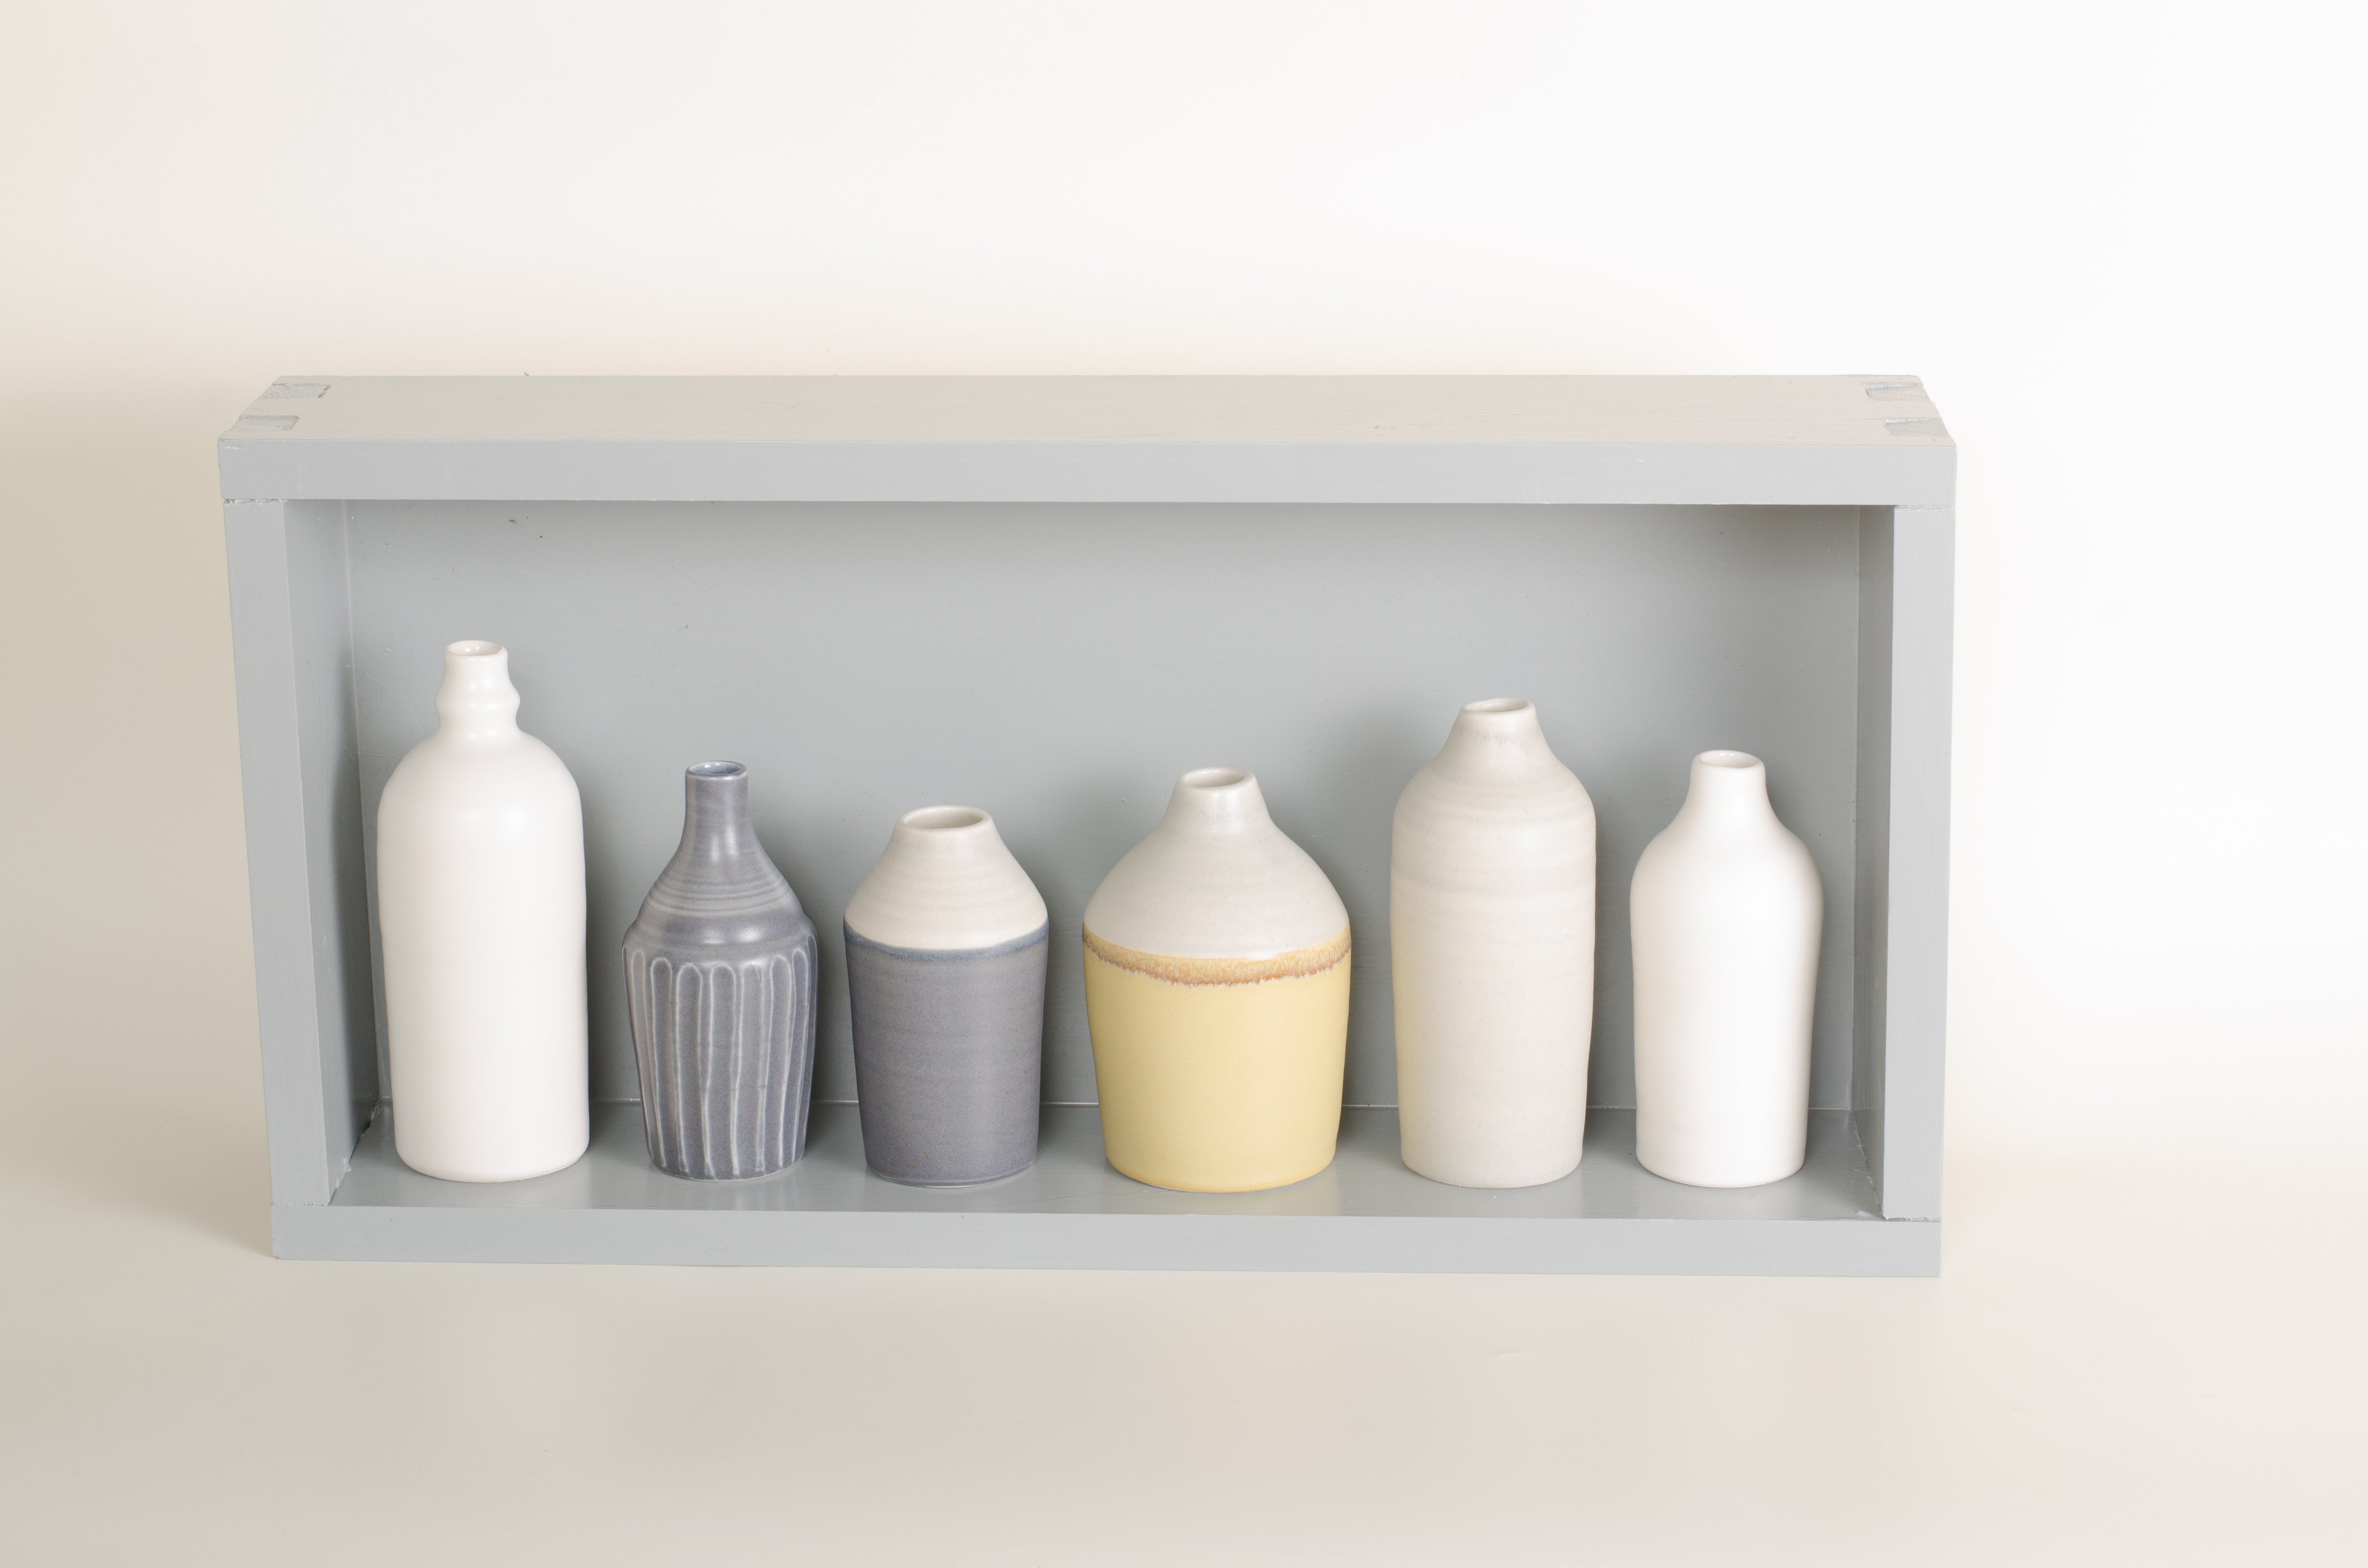 Hand thrown bottles, in white, grey, black and mustard, inspired by morandi paintings.